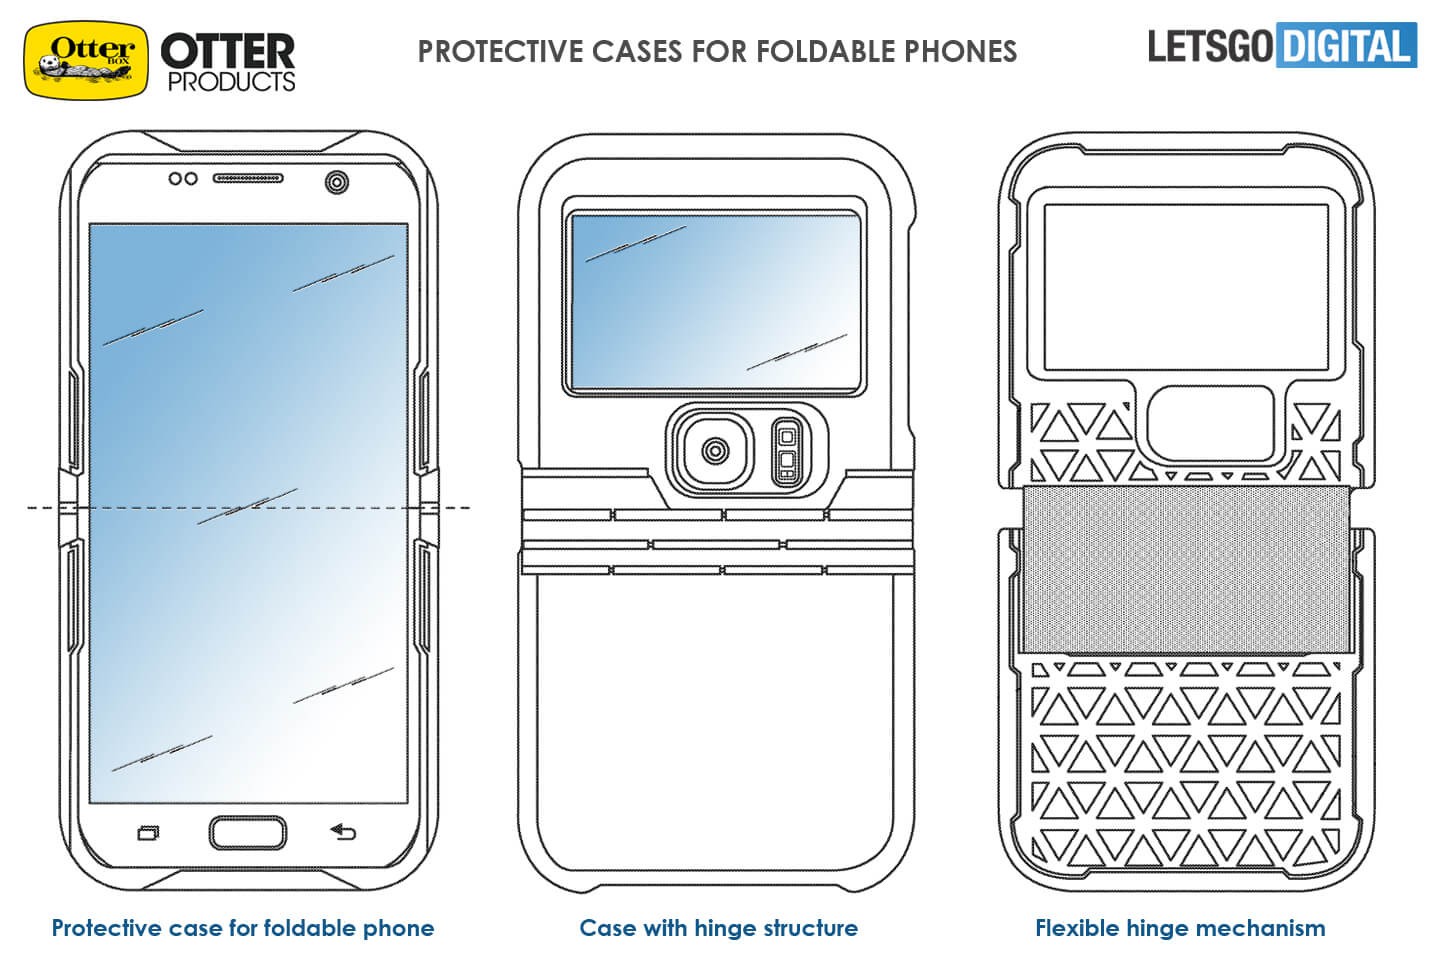 Otterbox foldable smartphone cases